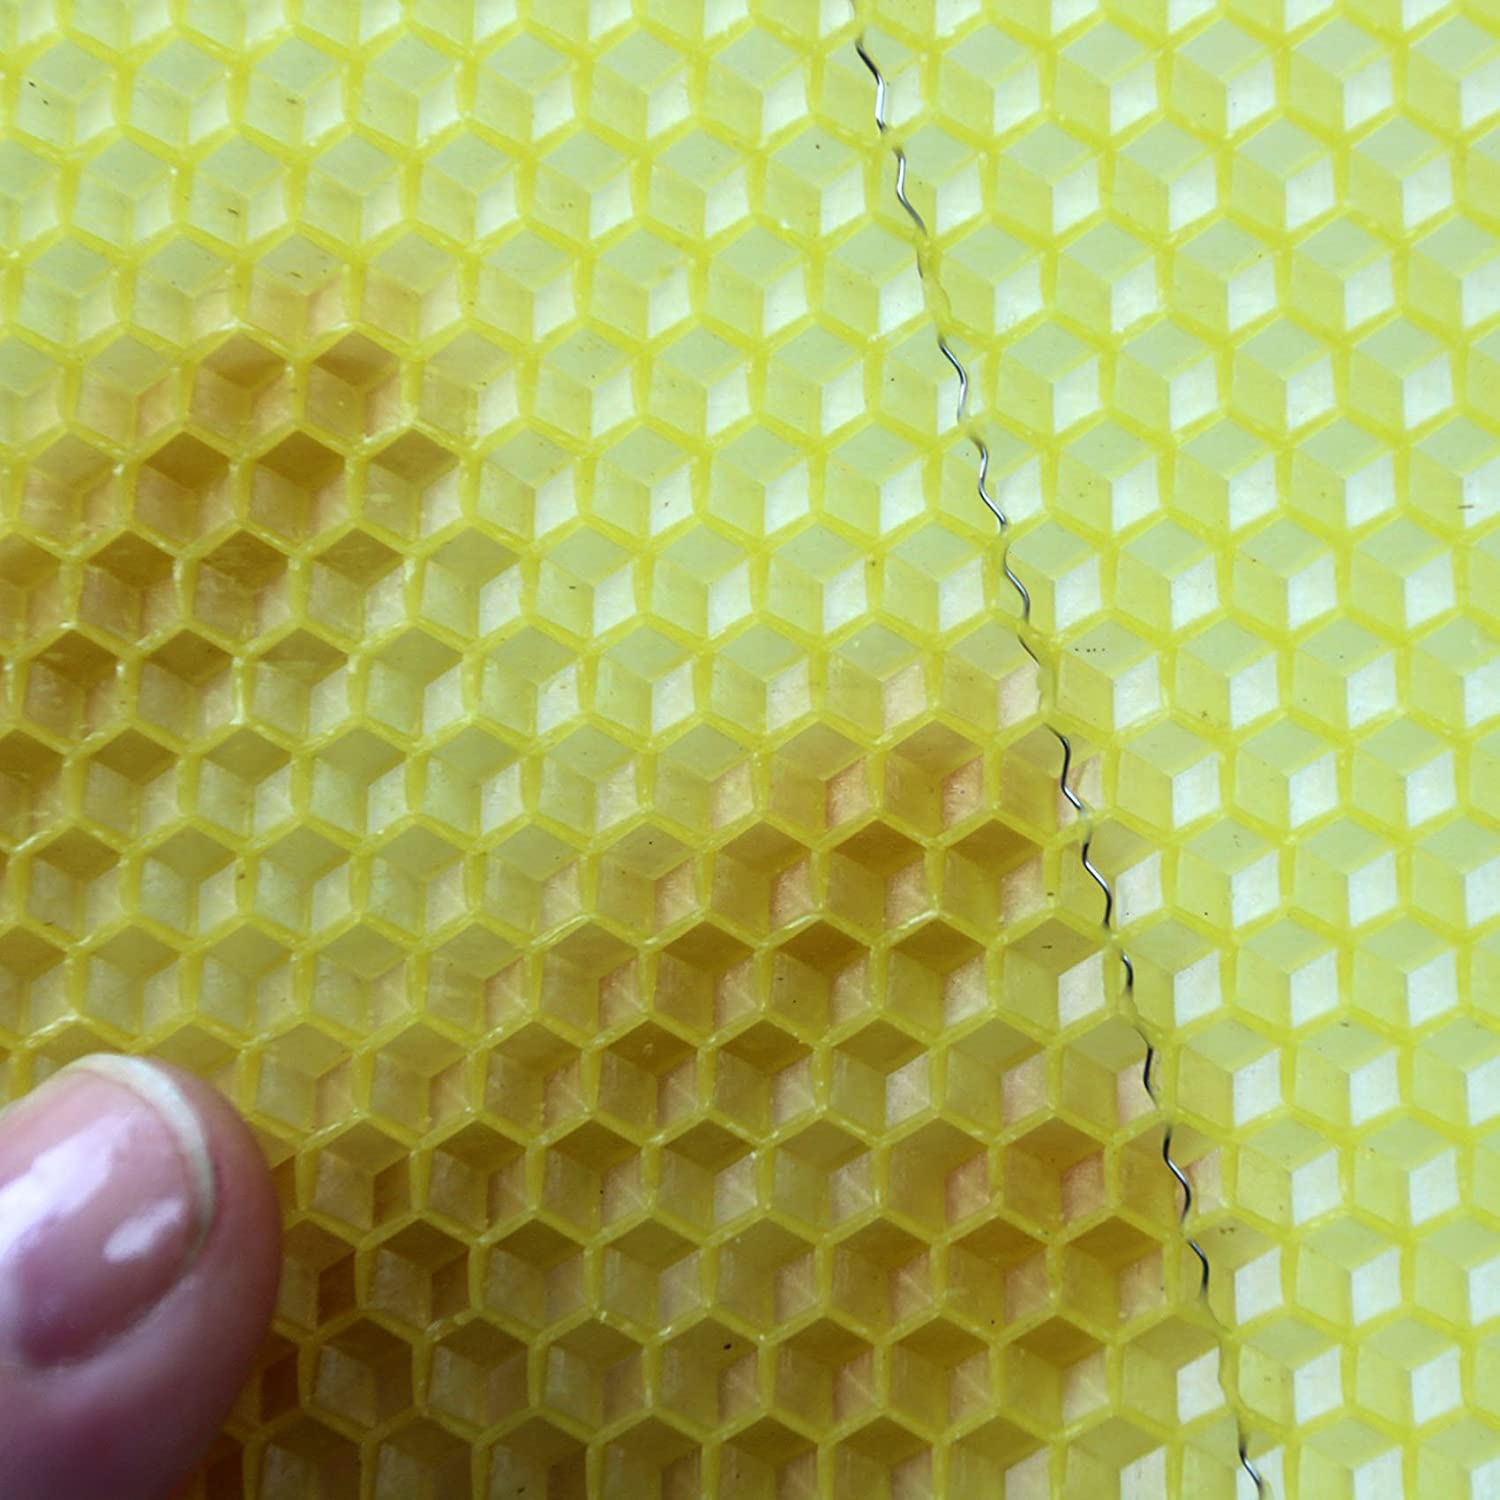 50 easibee National Bee Hive Brood Wired 100/% Natural Beeswax Foundation Sheets